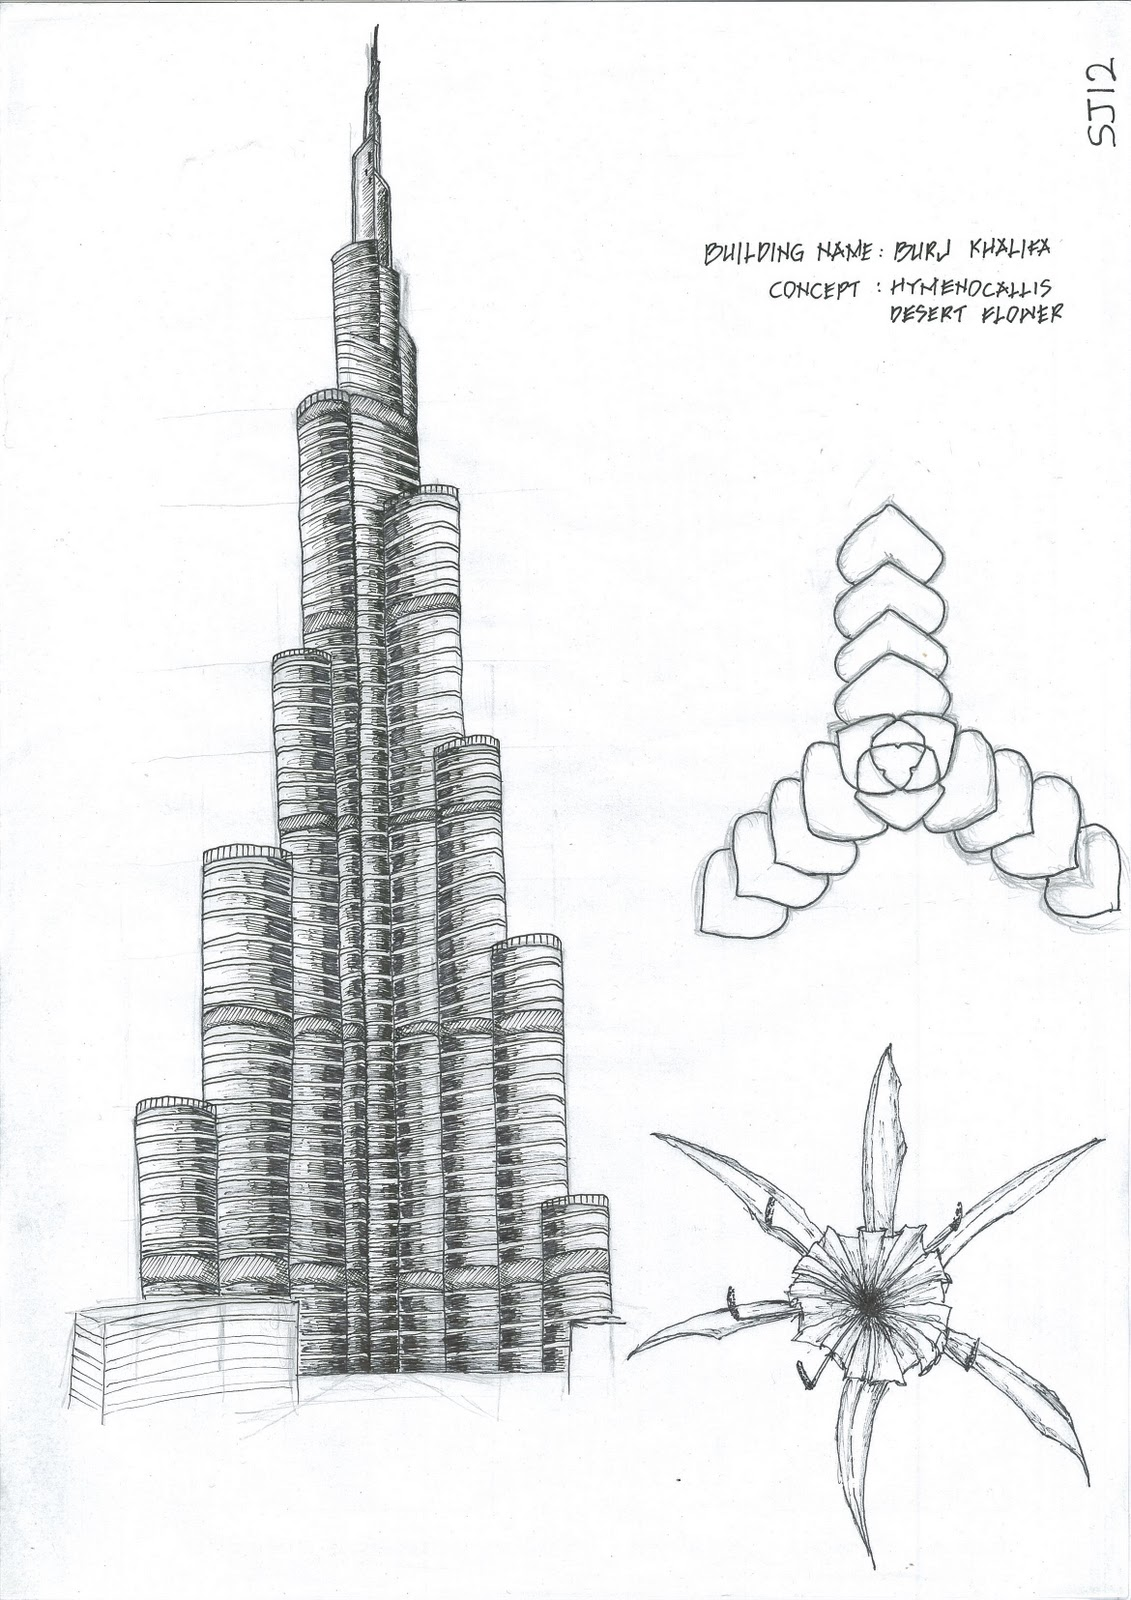 The New Dubai And Its Symbol The Burj Khalifa Tower